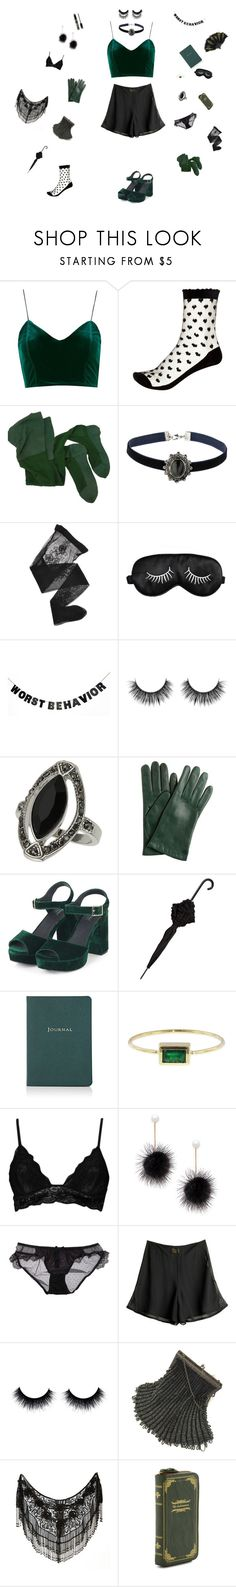 """""""Love Dream"""" by edit-hansson ❤ liked on Polyvore featuring Topshop, Black, Emporio Armani, WALL, J.Crew, Anna Sui, Mimco, Barneys New York, Jennifer Meyer Jewelry and Boohoo"""